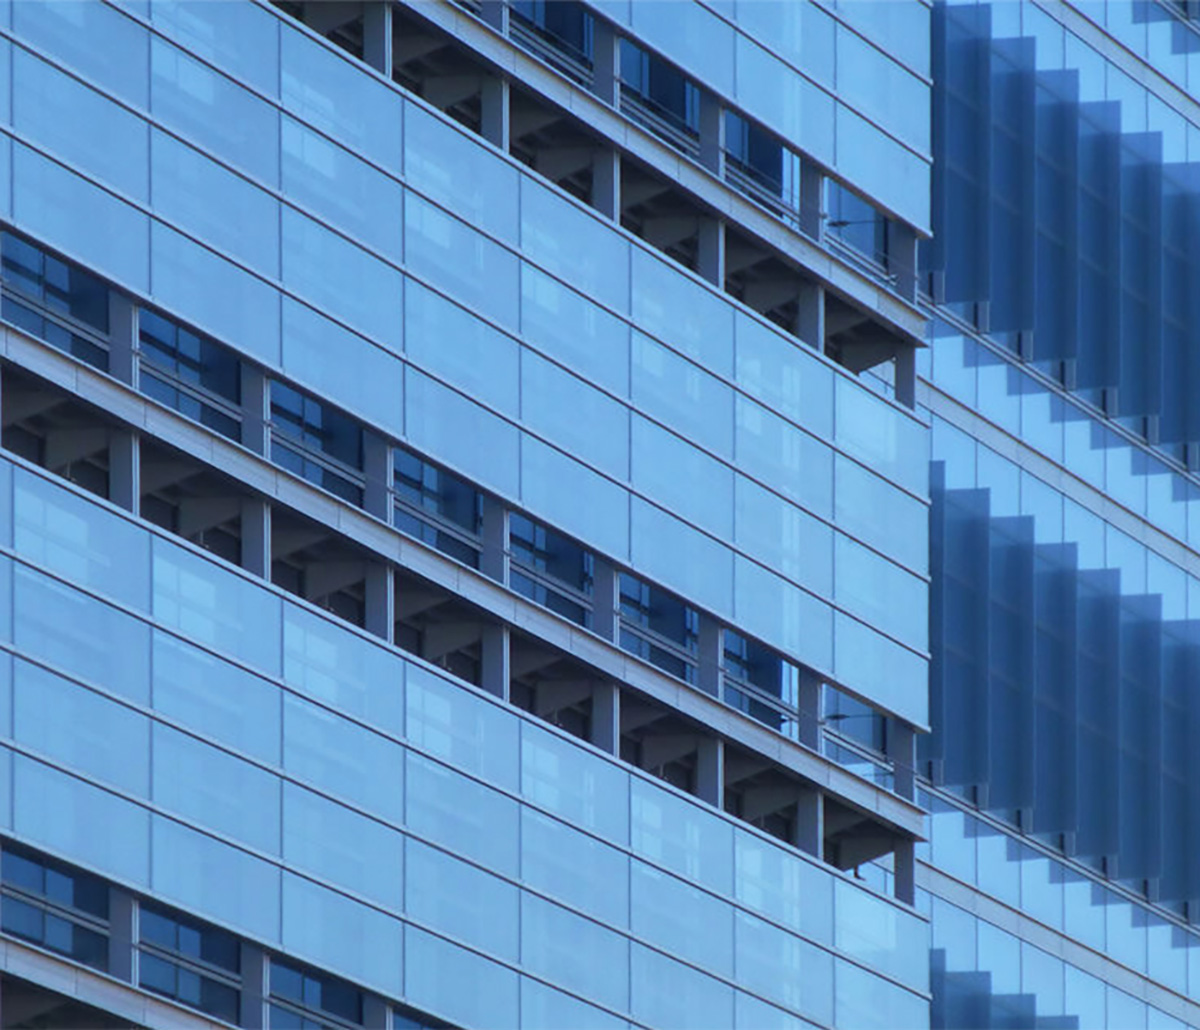 Benson Curtain Wall Engineered Systems Products - Close-up of a high-rise constructed of Benson Curtain Wall